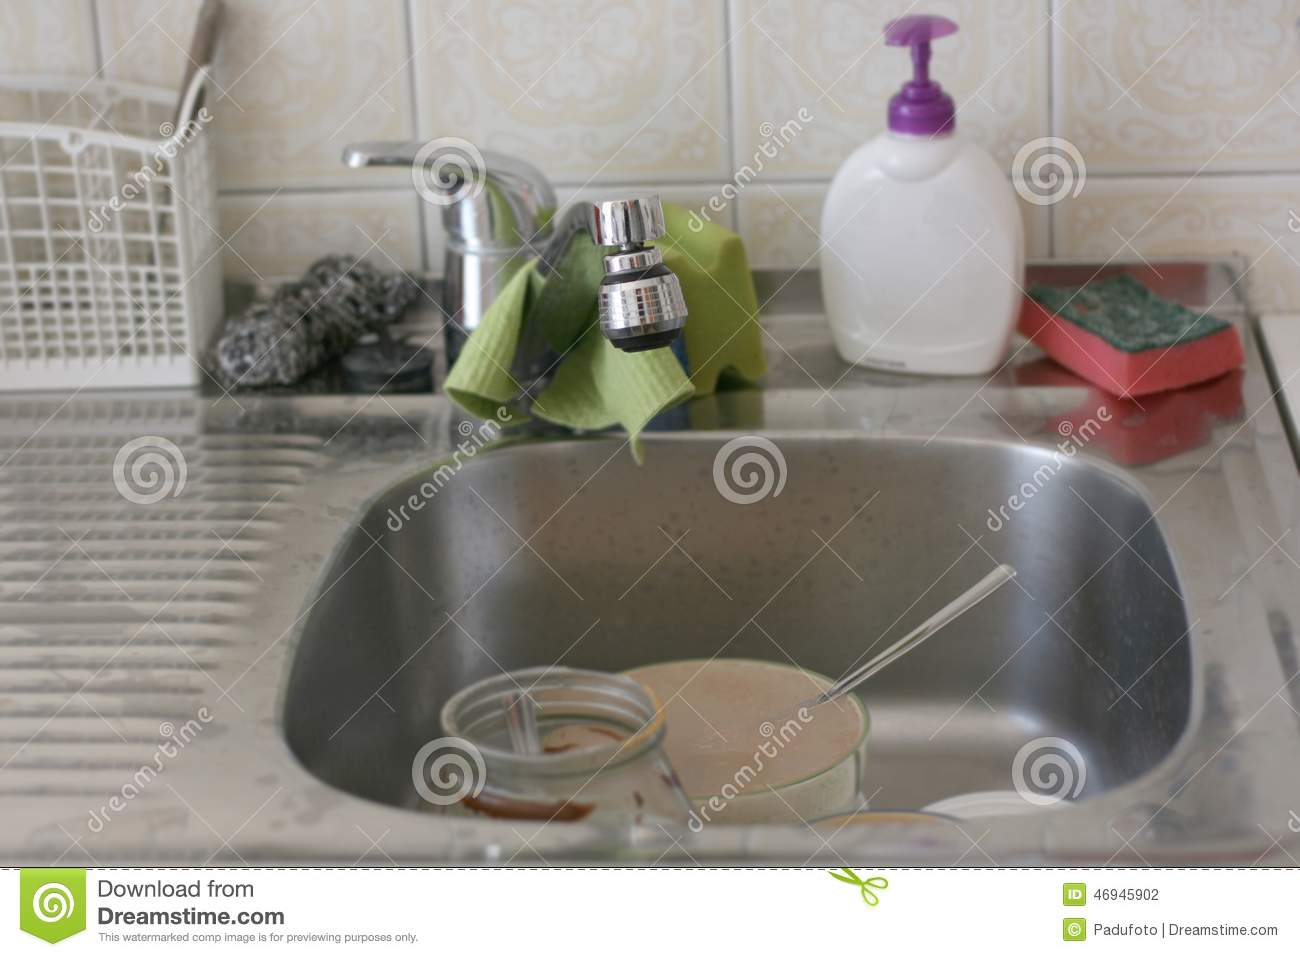 Dirty kitchen sink stock photo. Image of kitchen, family - 46945902